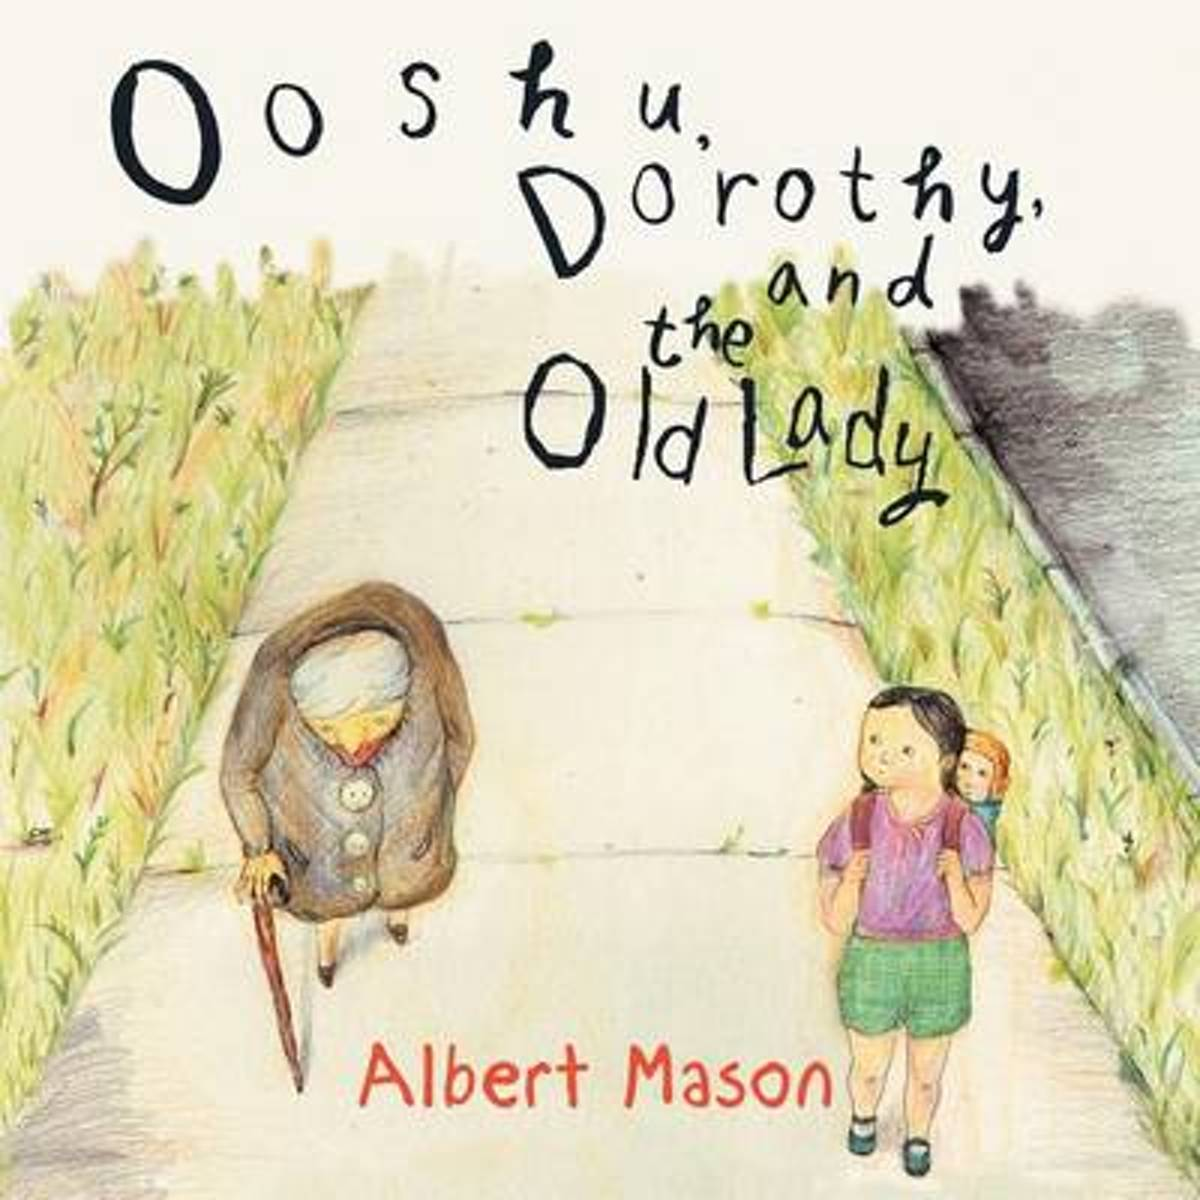 Ooshu, Dorothy, and the Old Lady